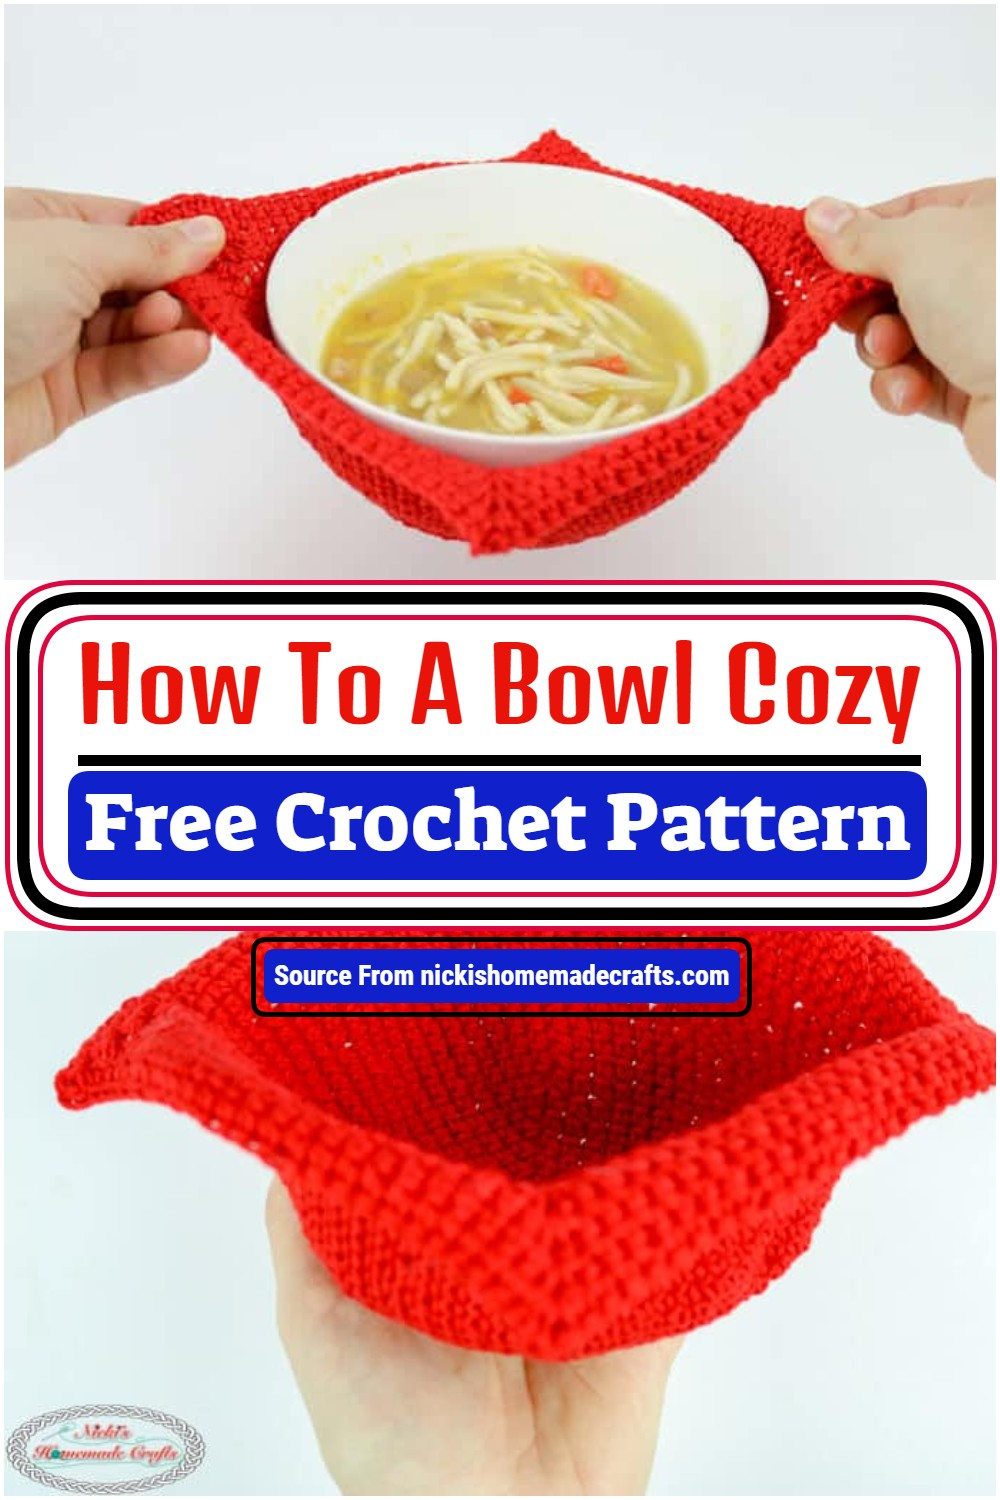 How To Crochet A Bowl Cozy